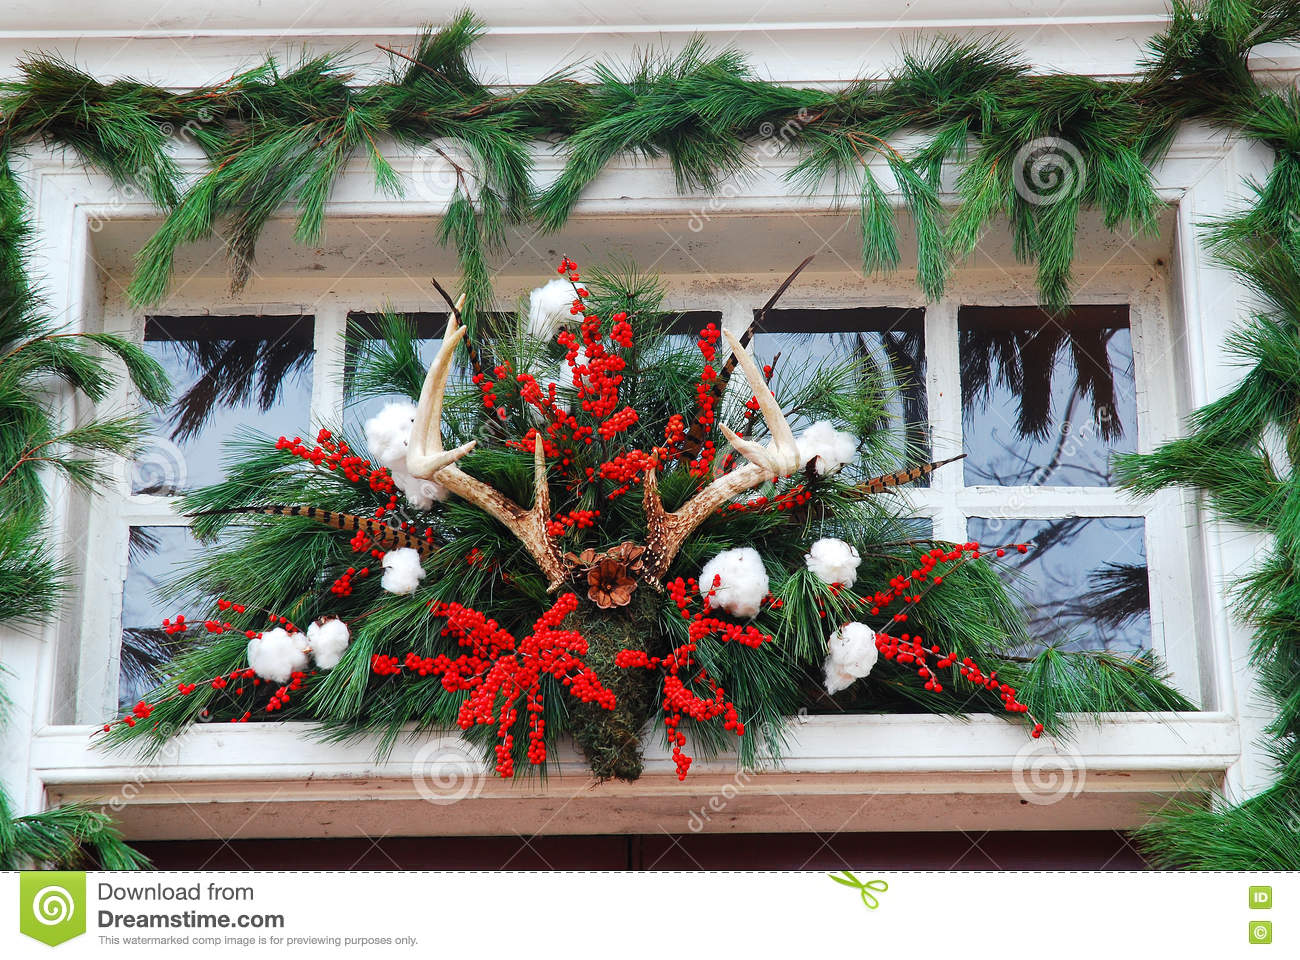 Christmas Tree Decorations With Deer Antlers